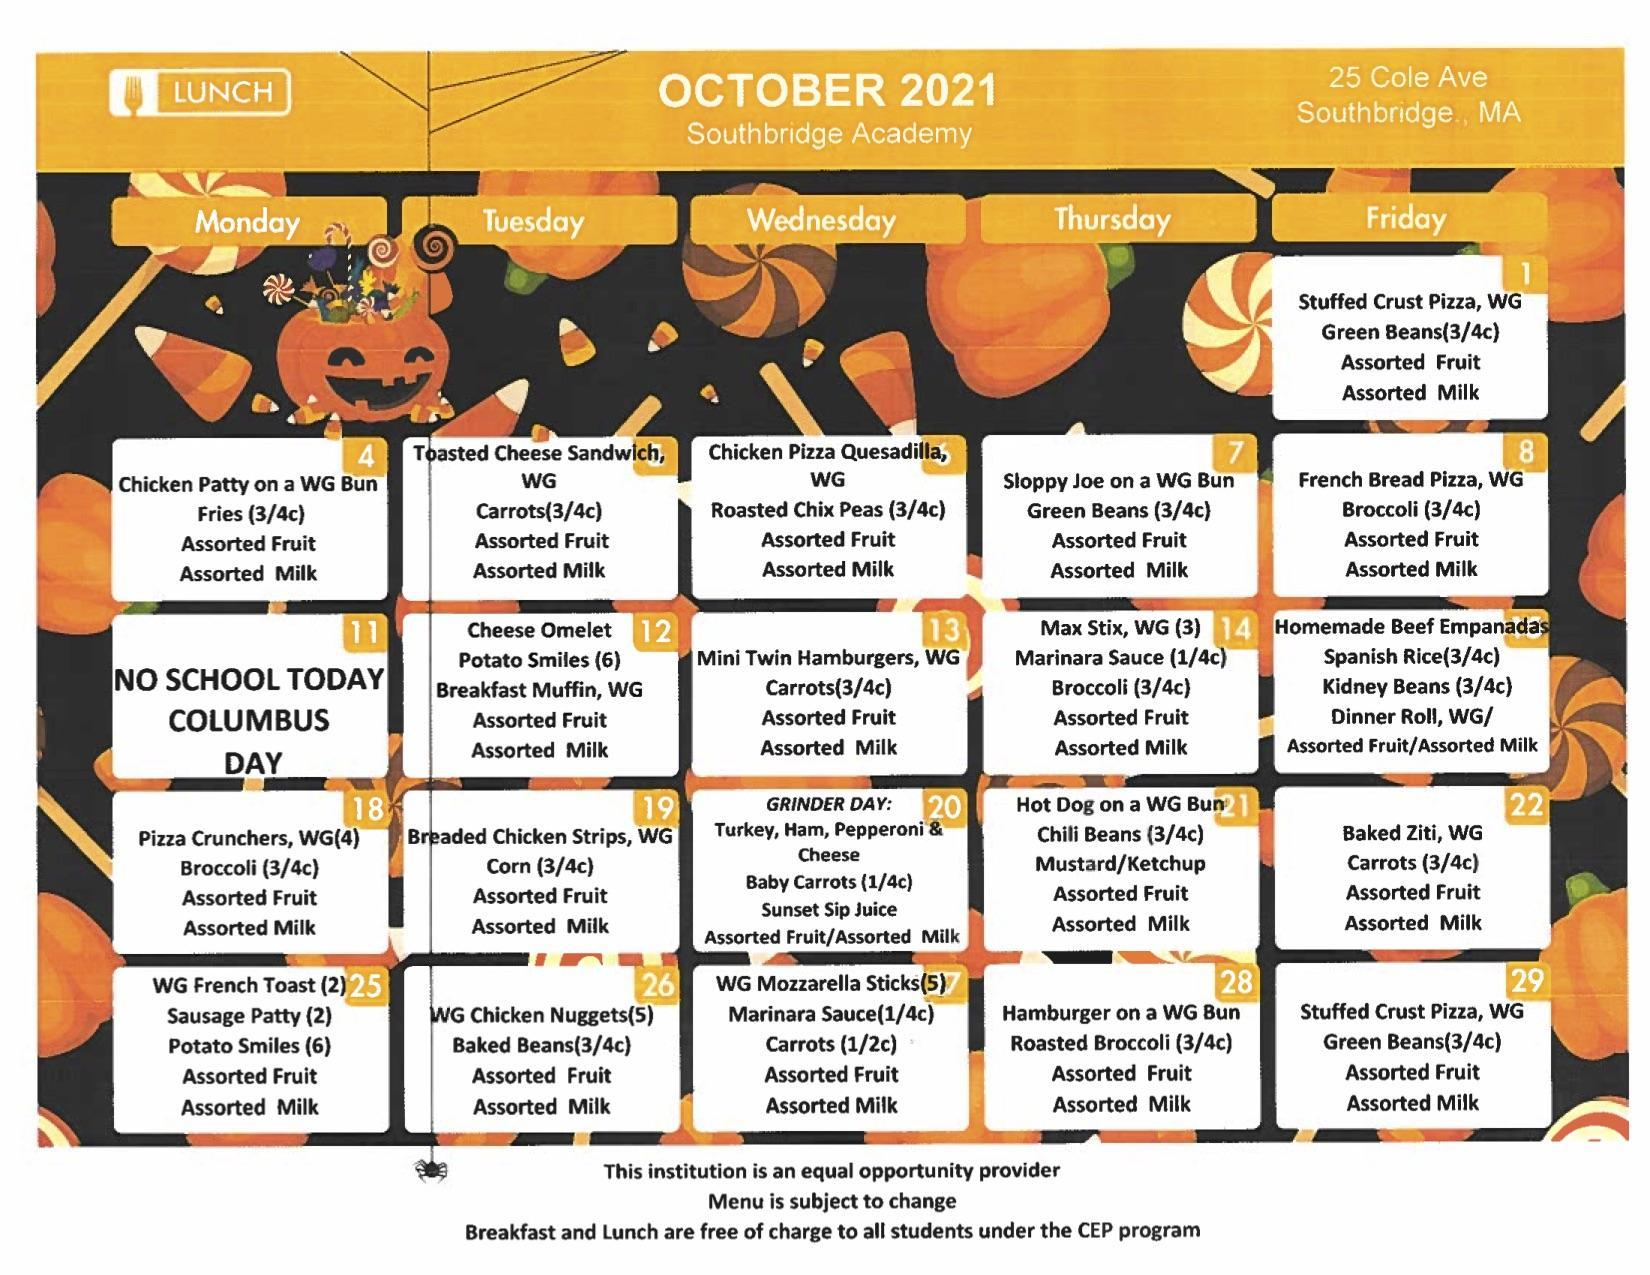 October 2021 menu for Southbridge Academy. This item is also available on the same page as a download.